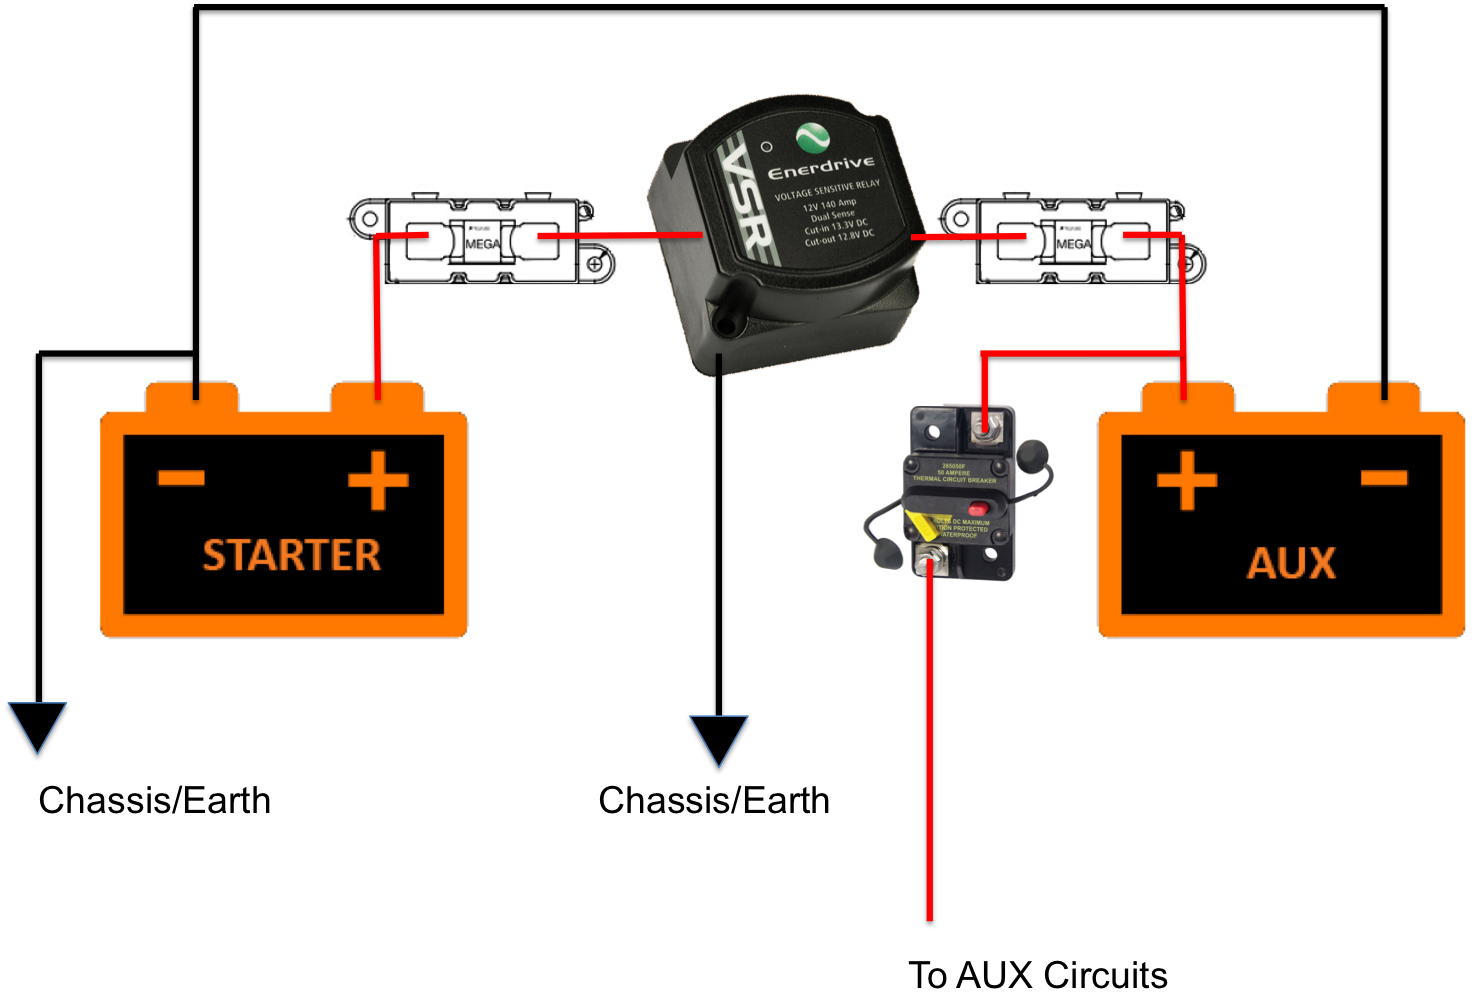 EnerderriveMegafuseBreaker install guides solid kit vsr wiring diagram at gsmx.co